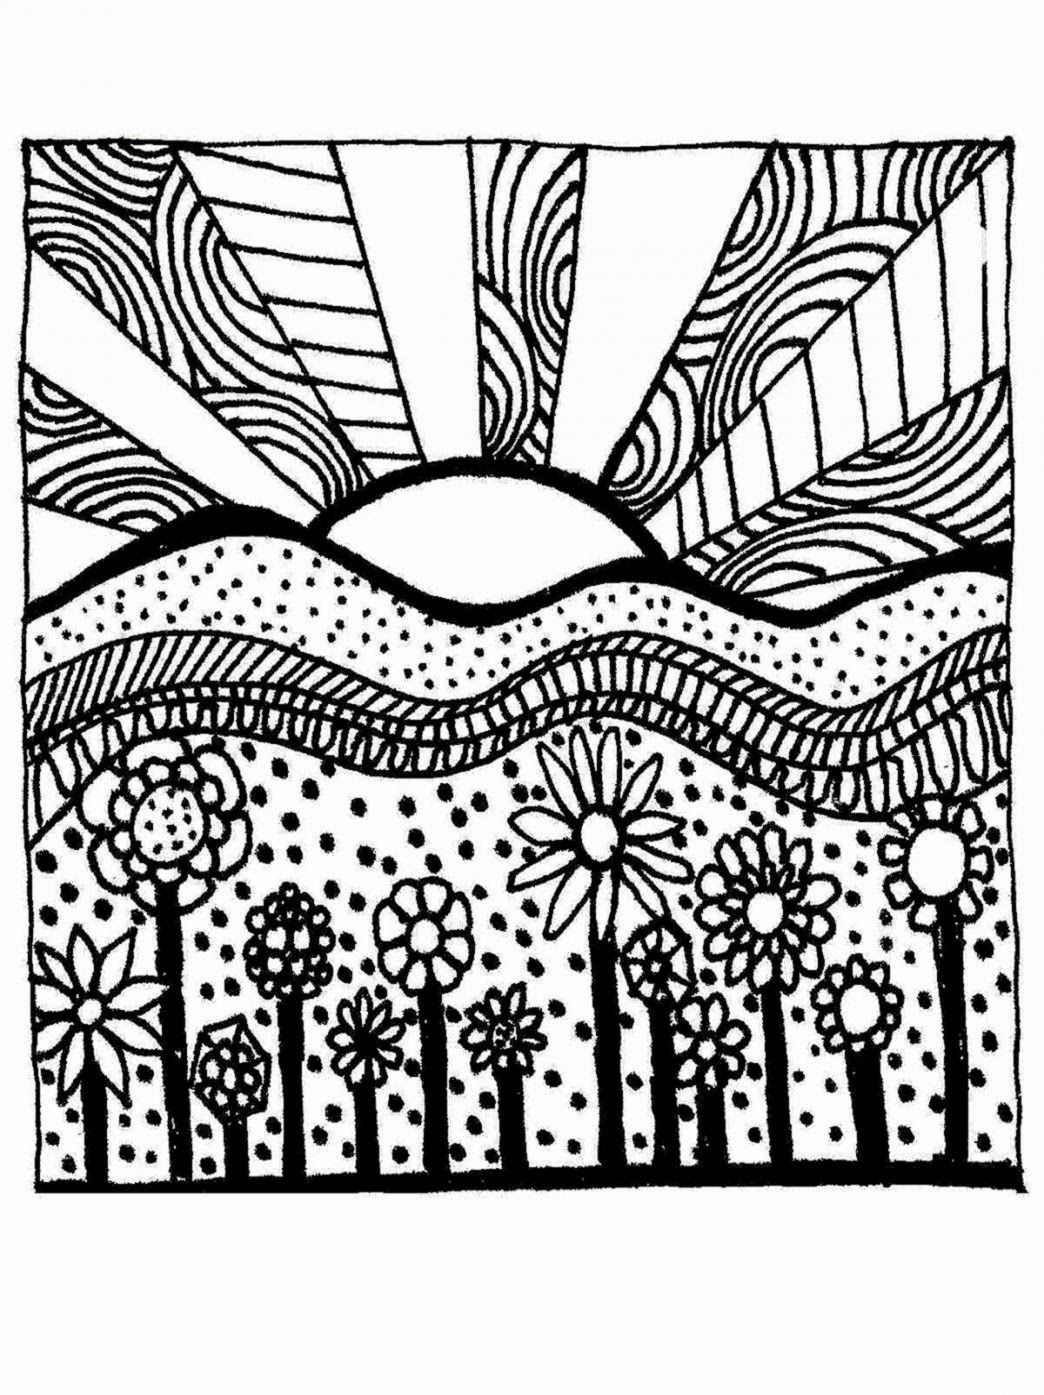 Printable Free Coloring Pages For Adults  Free Coloring Pages For Adults To Print Special Image 22